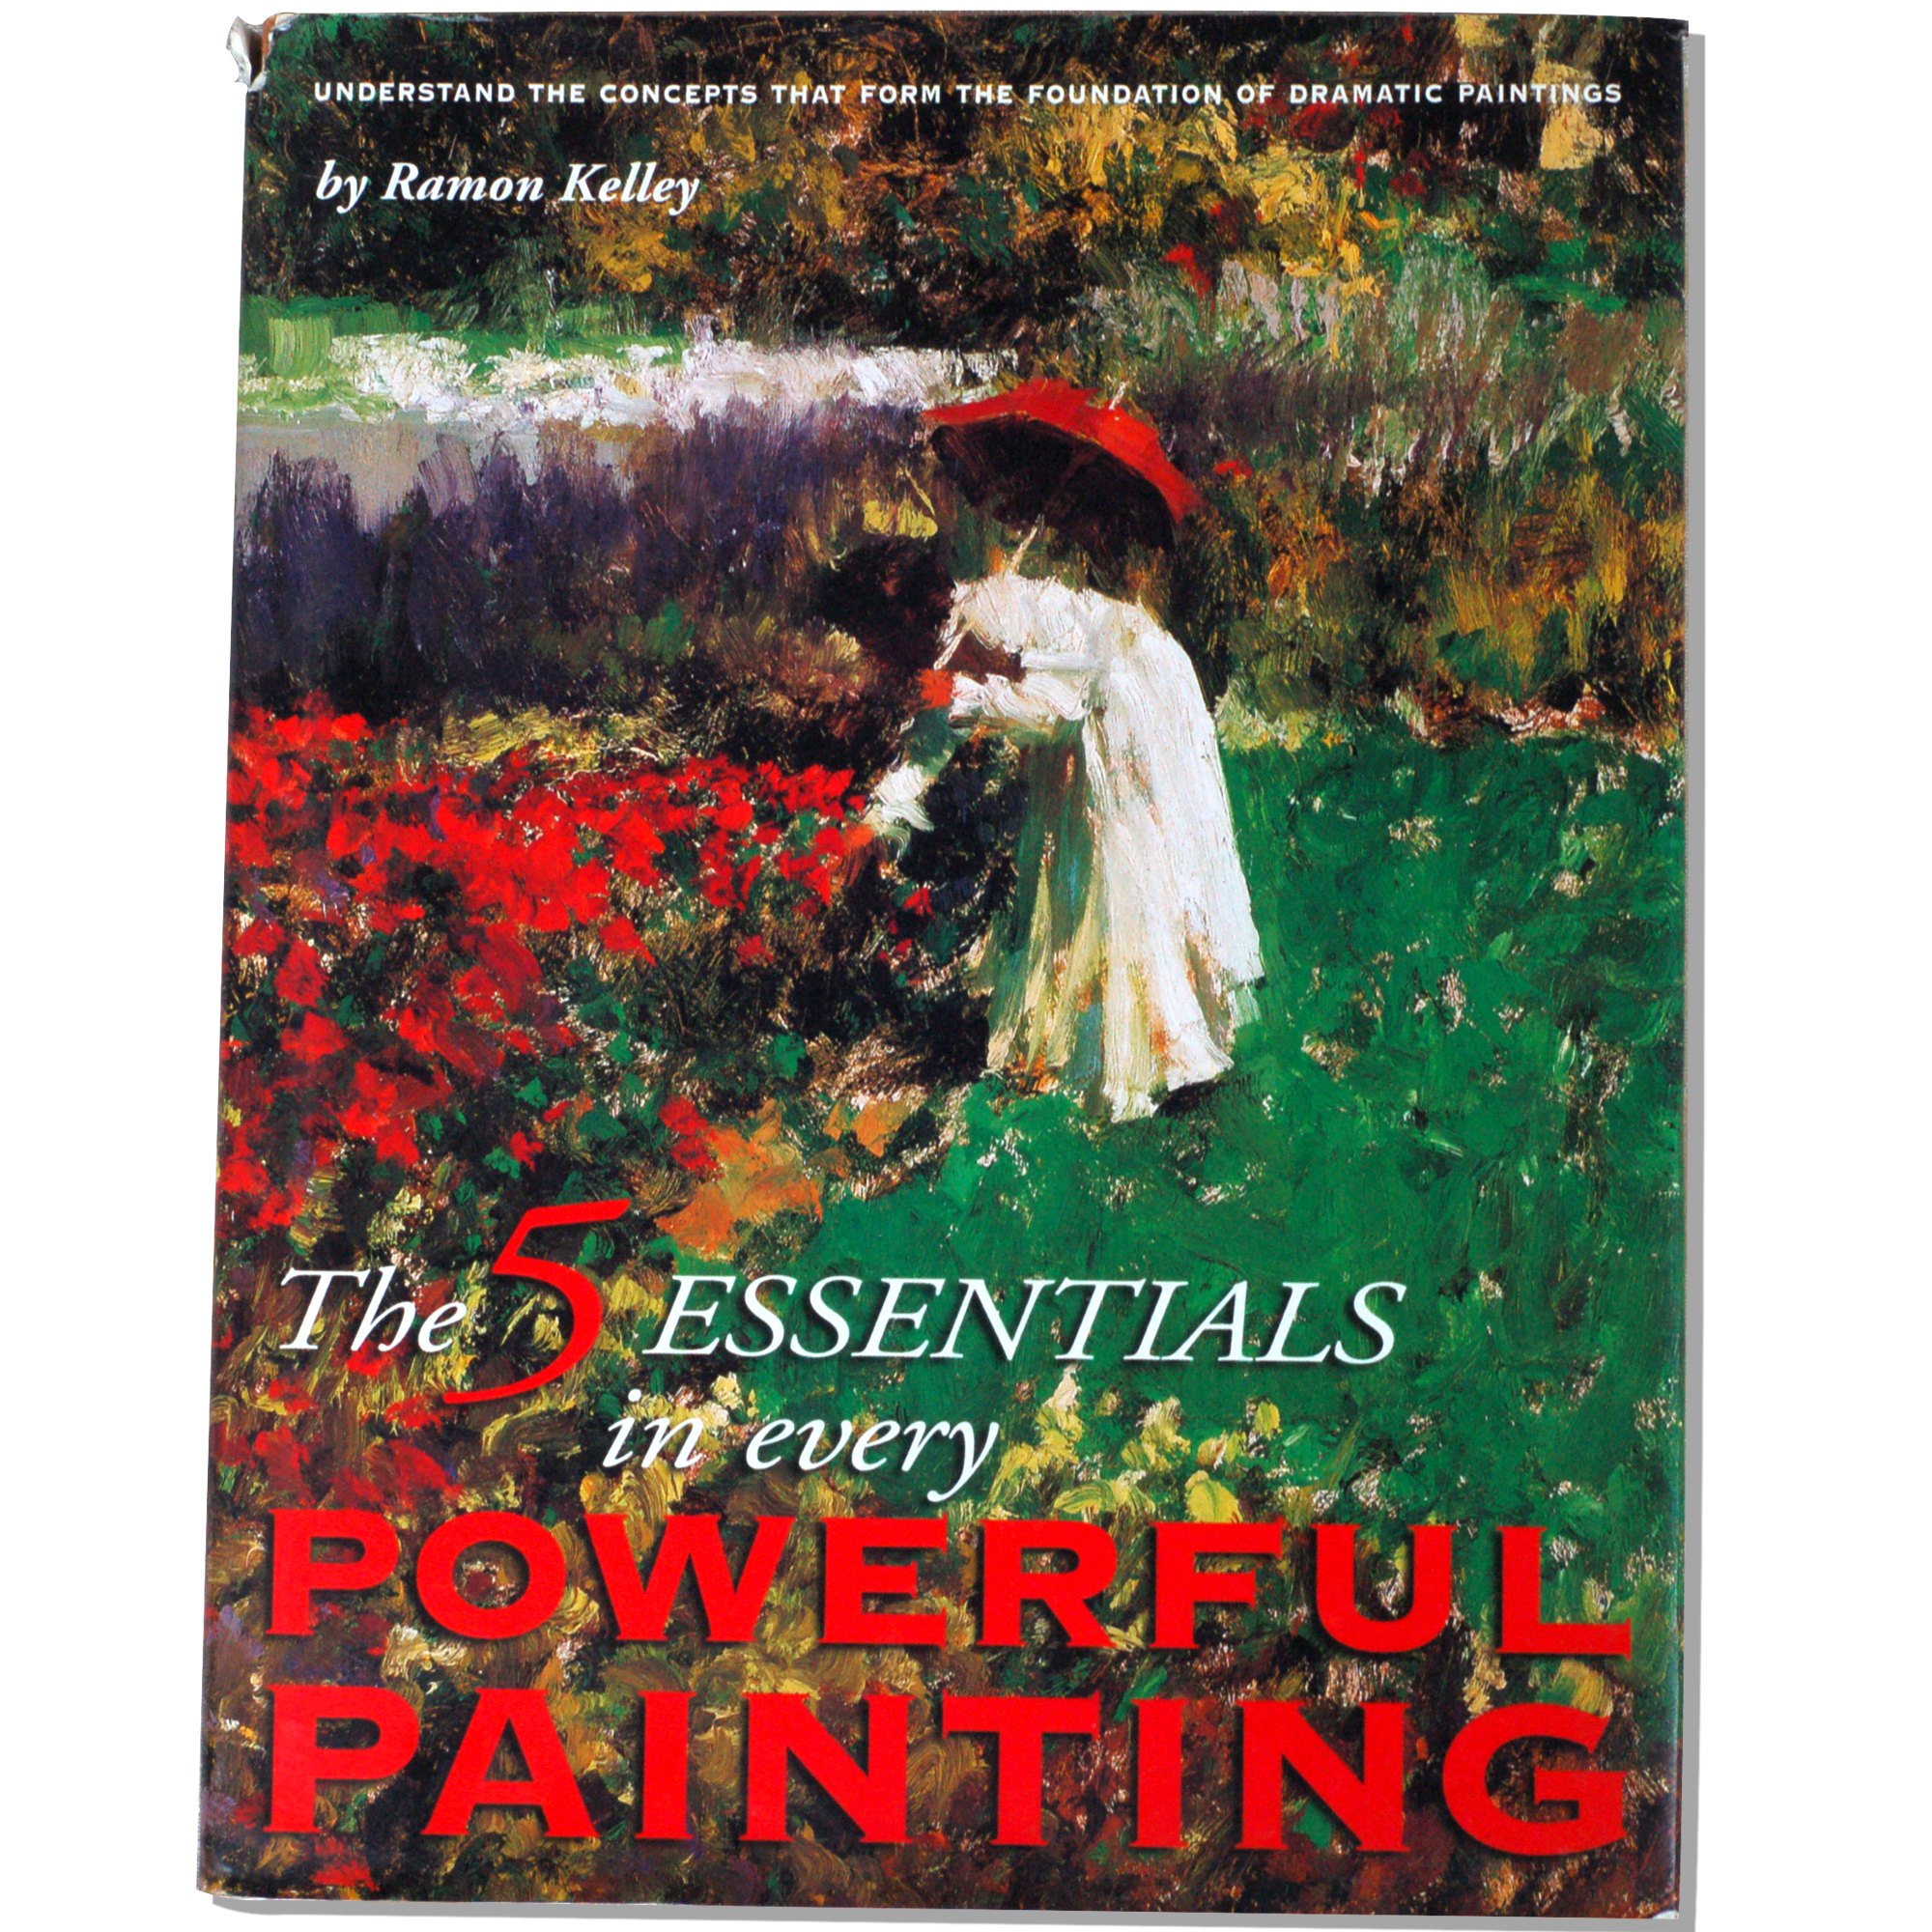 5 Essentials in Every Powerful Painting